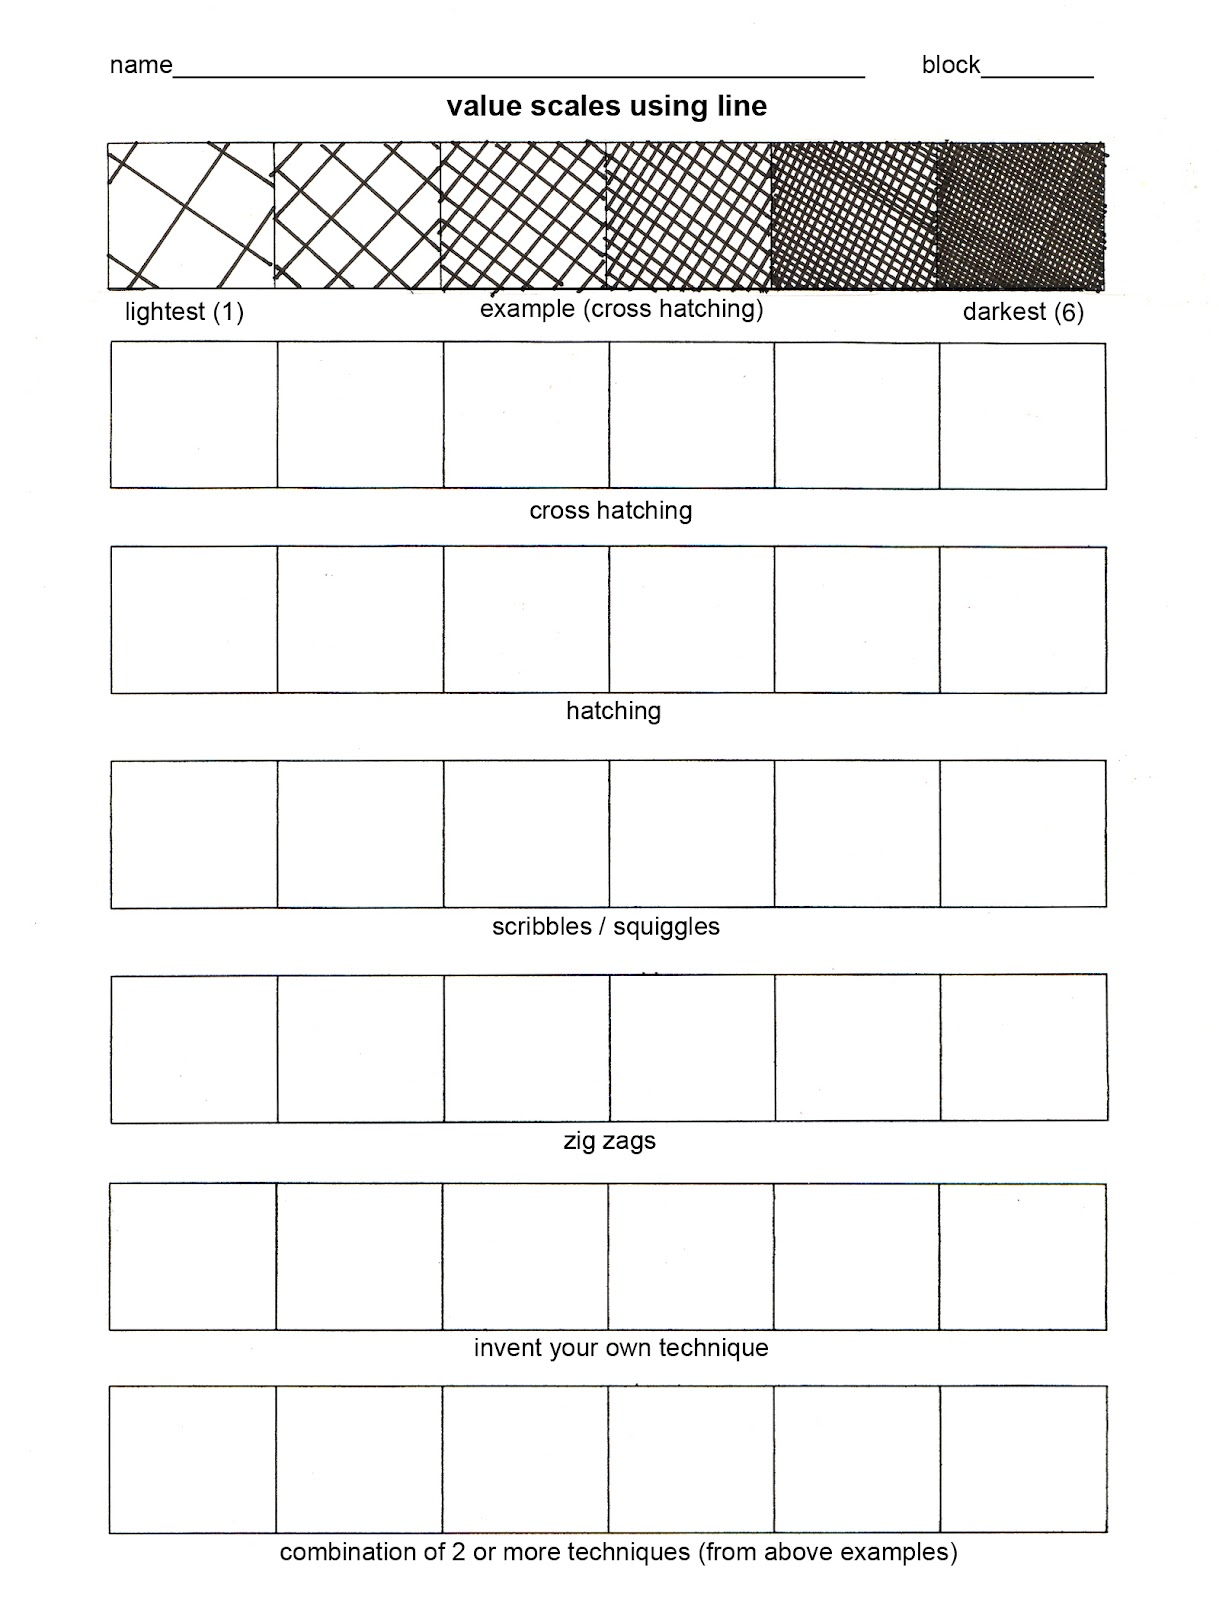 Vector Drawing Lines Worksheets : Images about handouts on pinterest worksheets art